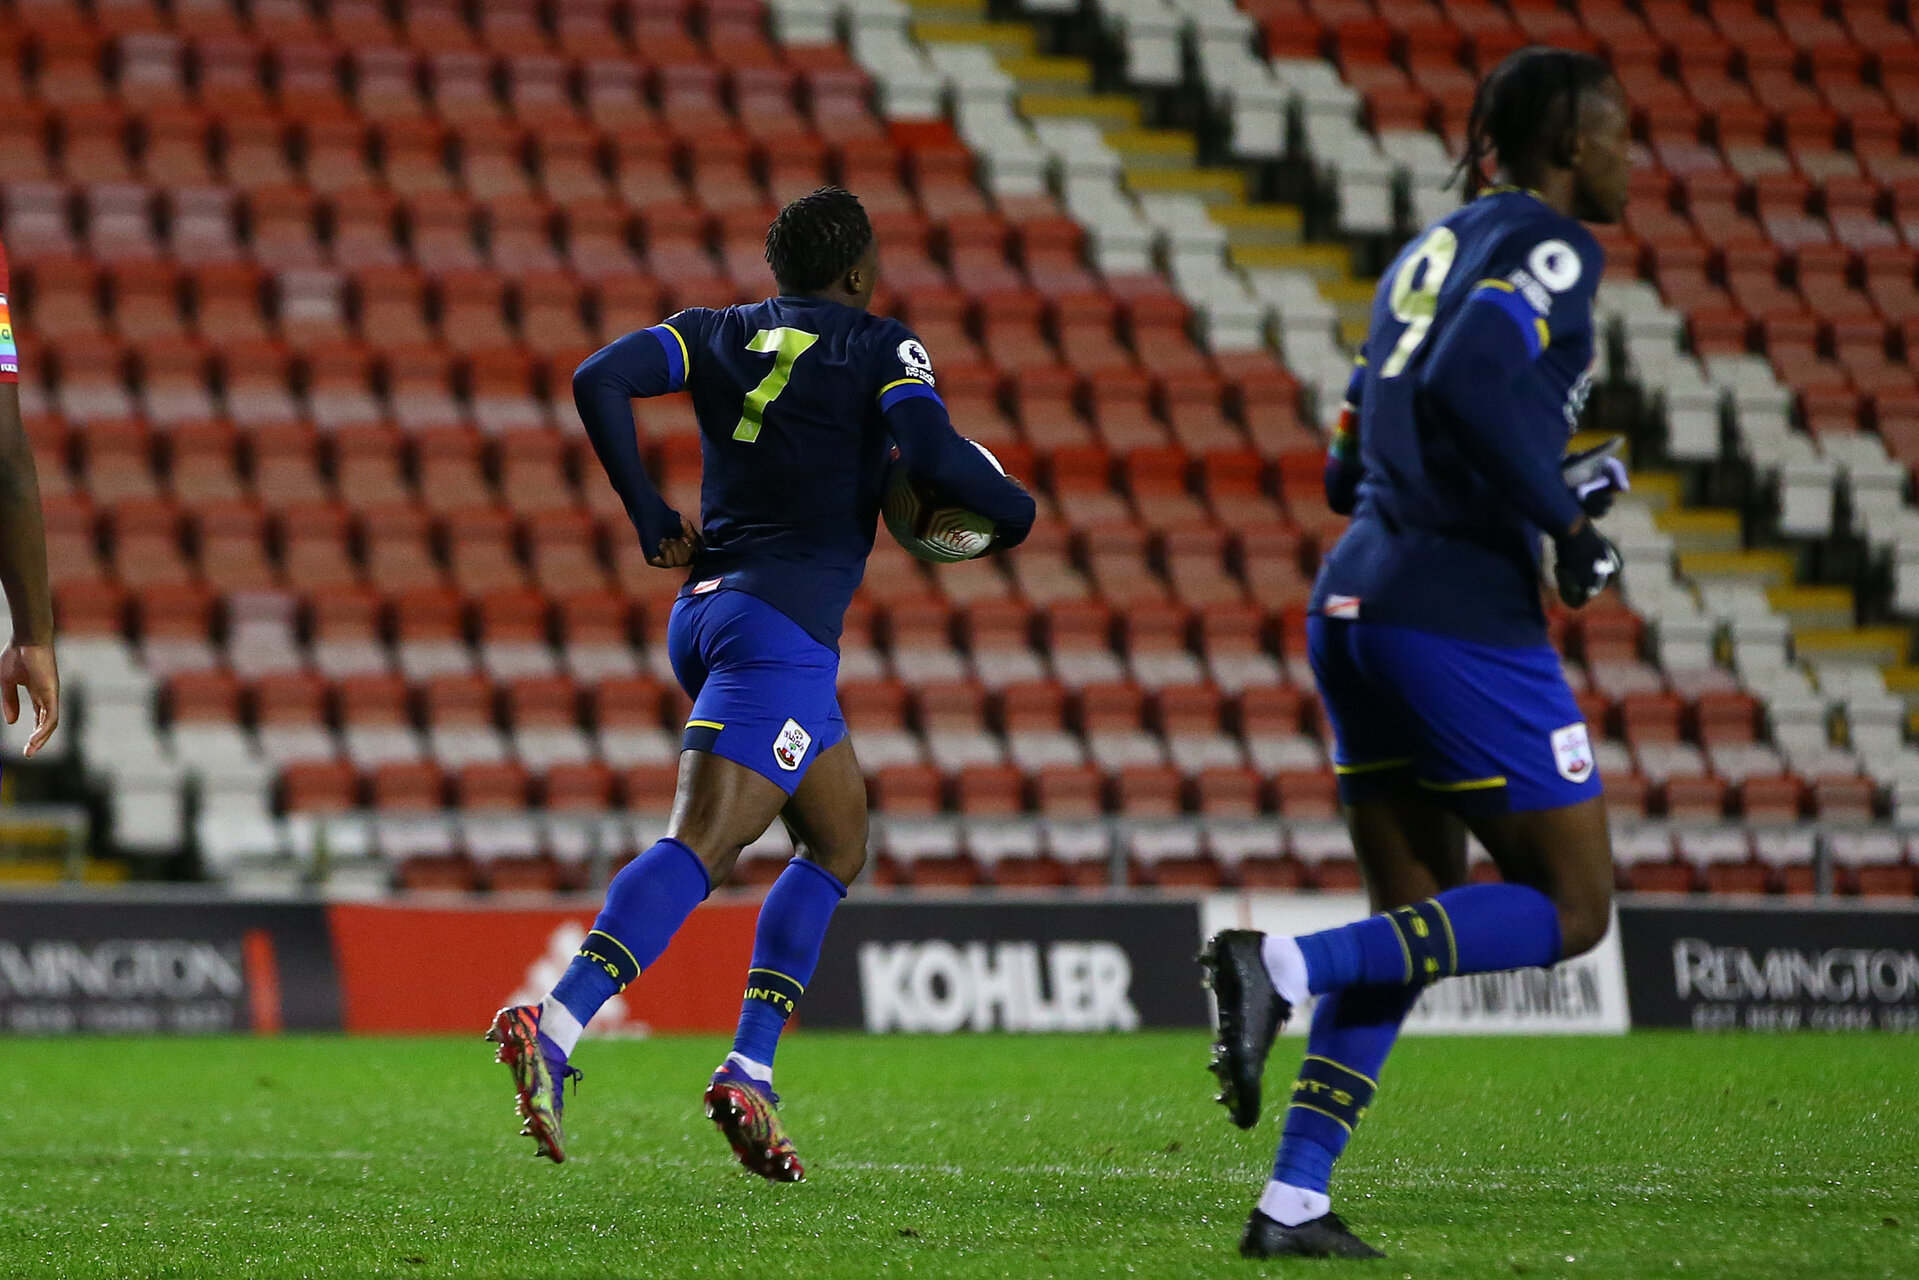 MANCHESTER, ENGLAND - DECEMBER 04: Michael Obafemi (L) of Southampton collects the after scoring during the Premier League 2 match between Manchester United and Southampton B Team at Leigh Sports Village on December 04, 2020 in Manchester, England. (Photo by Isabelle Field/Southampton FC via Getty Images)